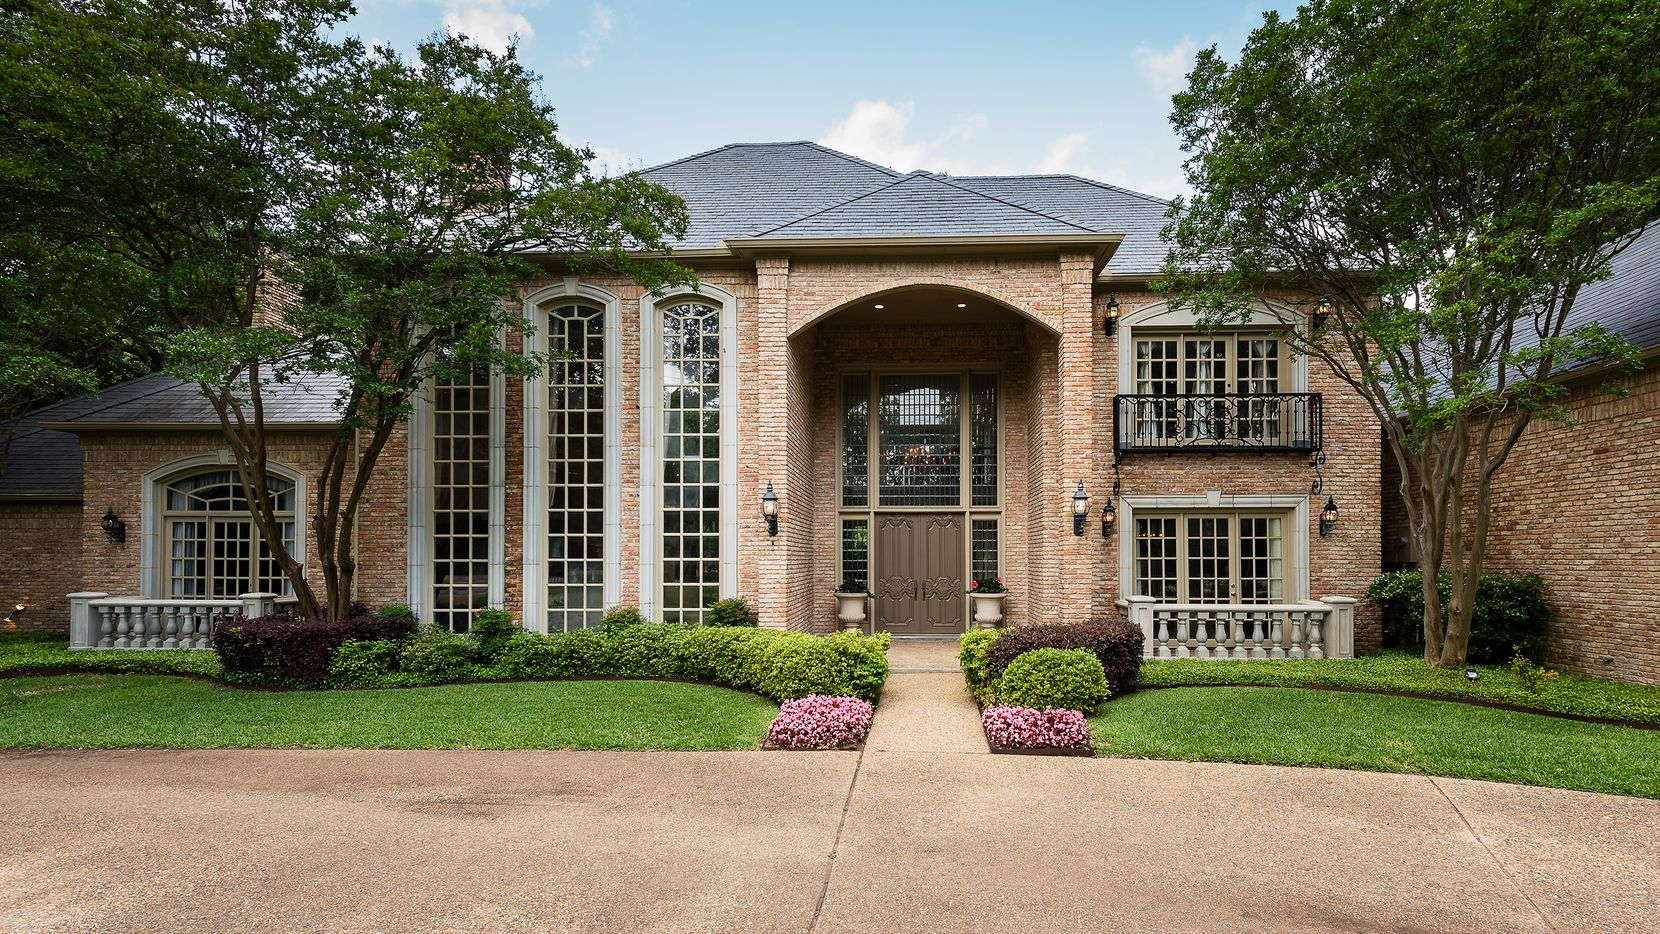 Take at the exterior of the house at 9441 Hollow Way Road in Dallas, TX.